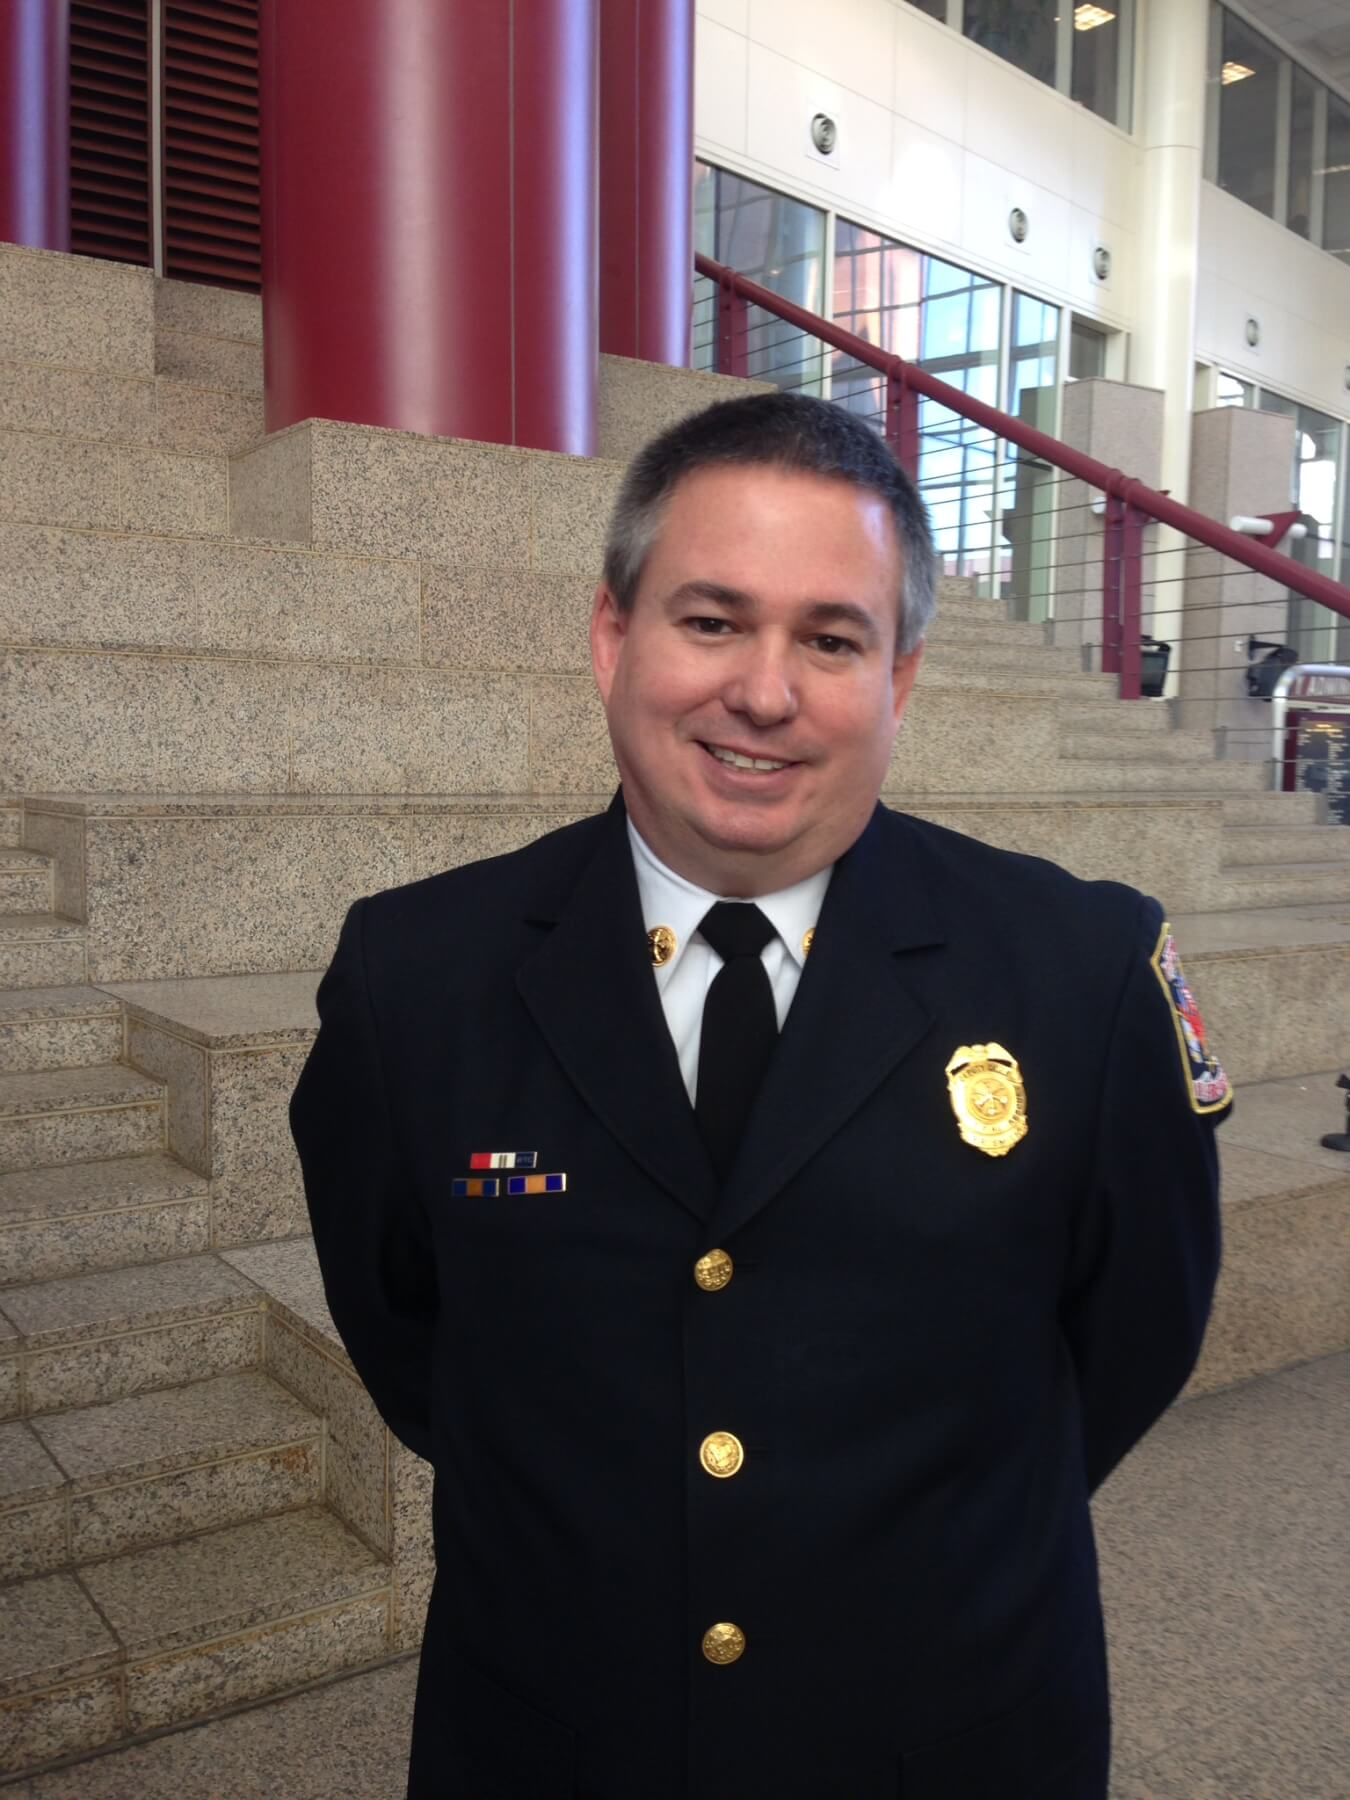 Discrimination lawsuit could affect approval of Stimpson fire chief appointment